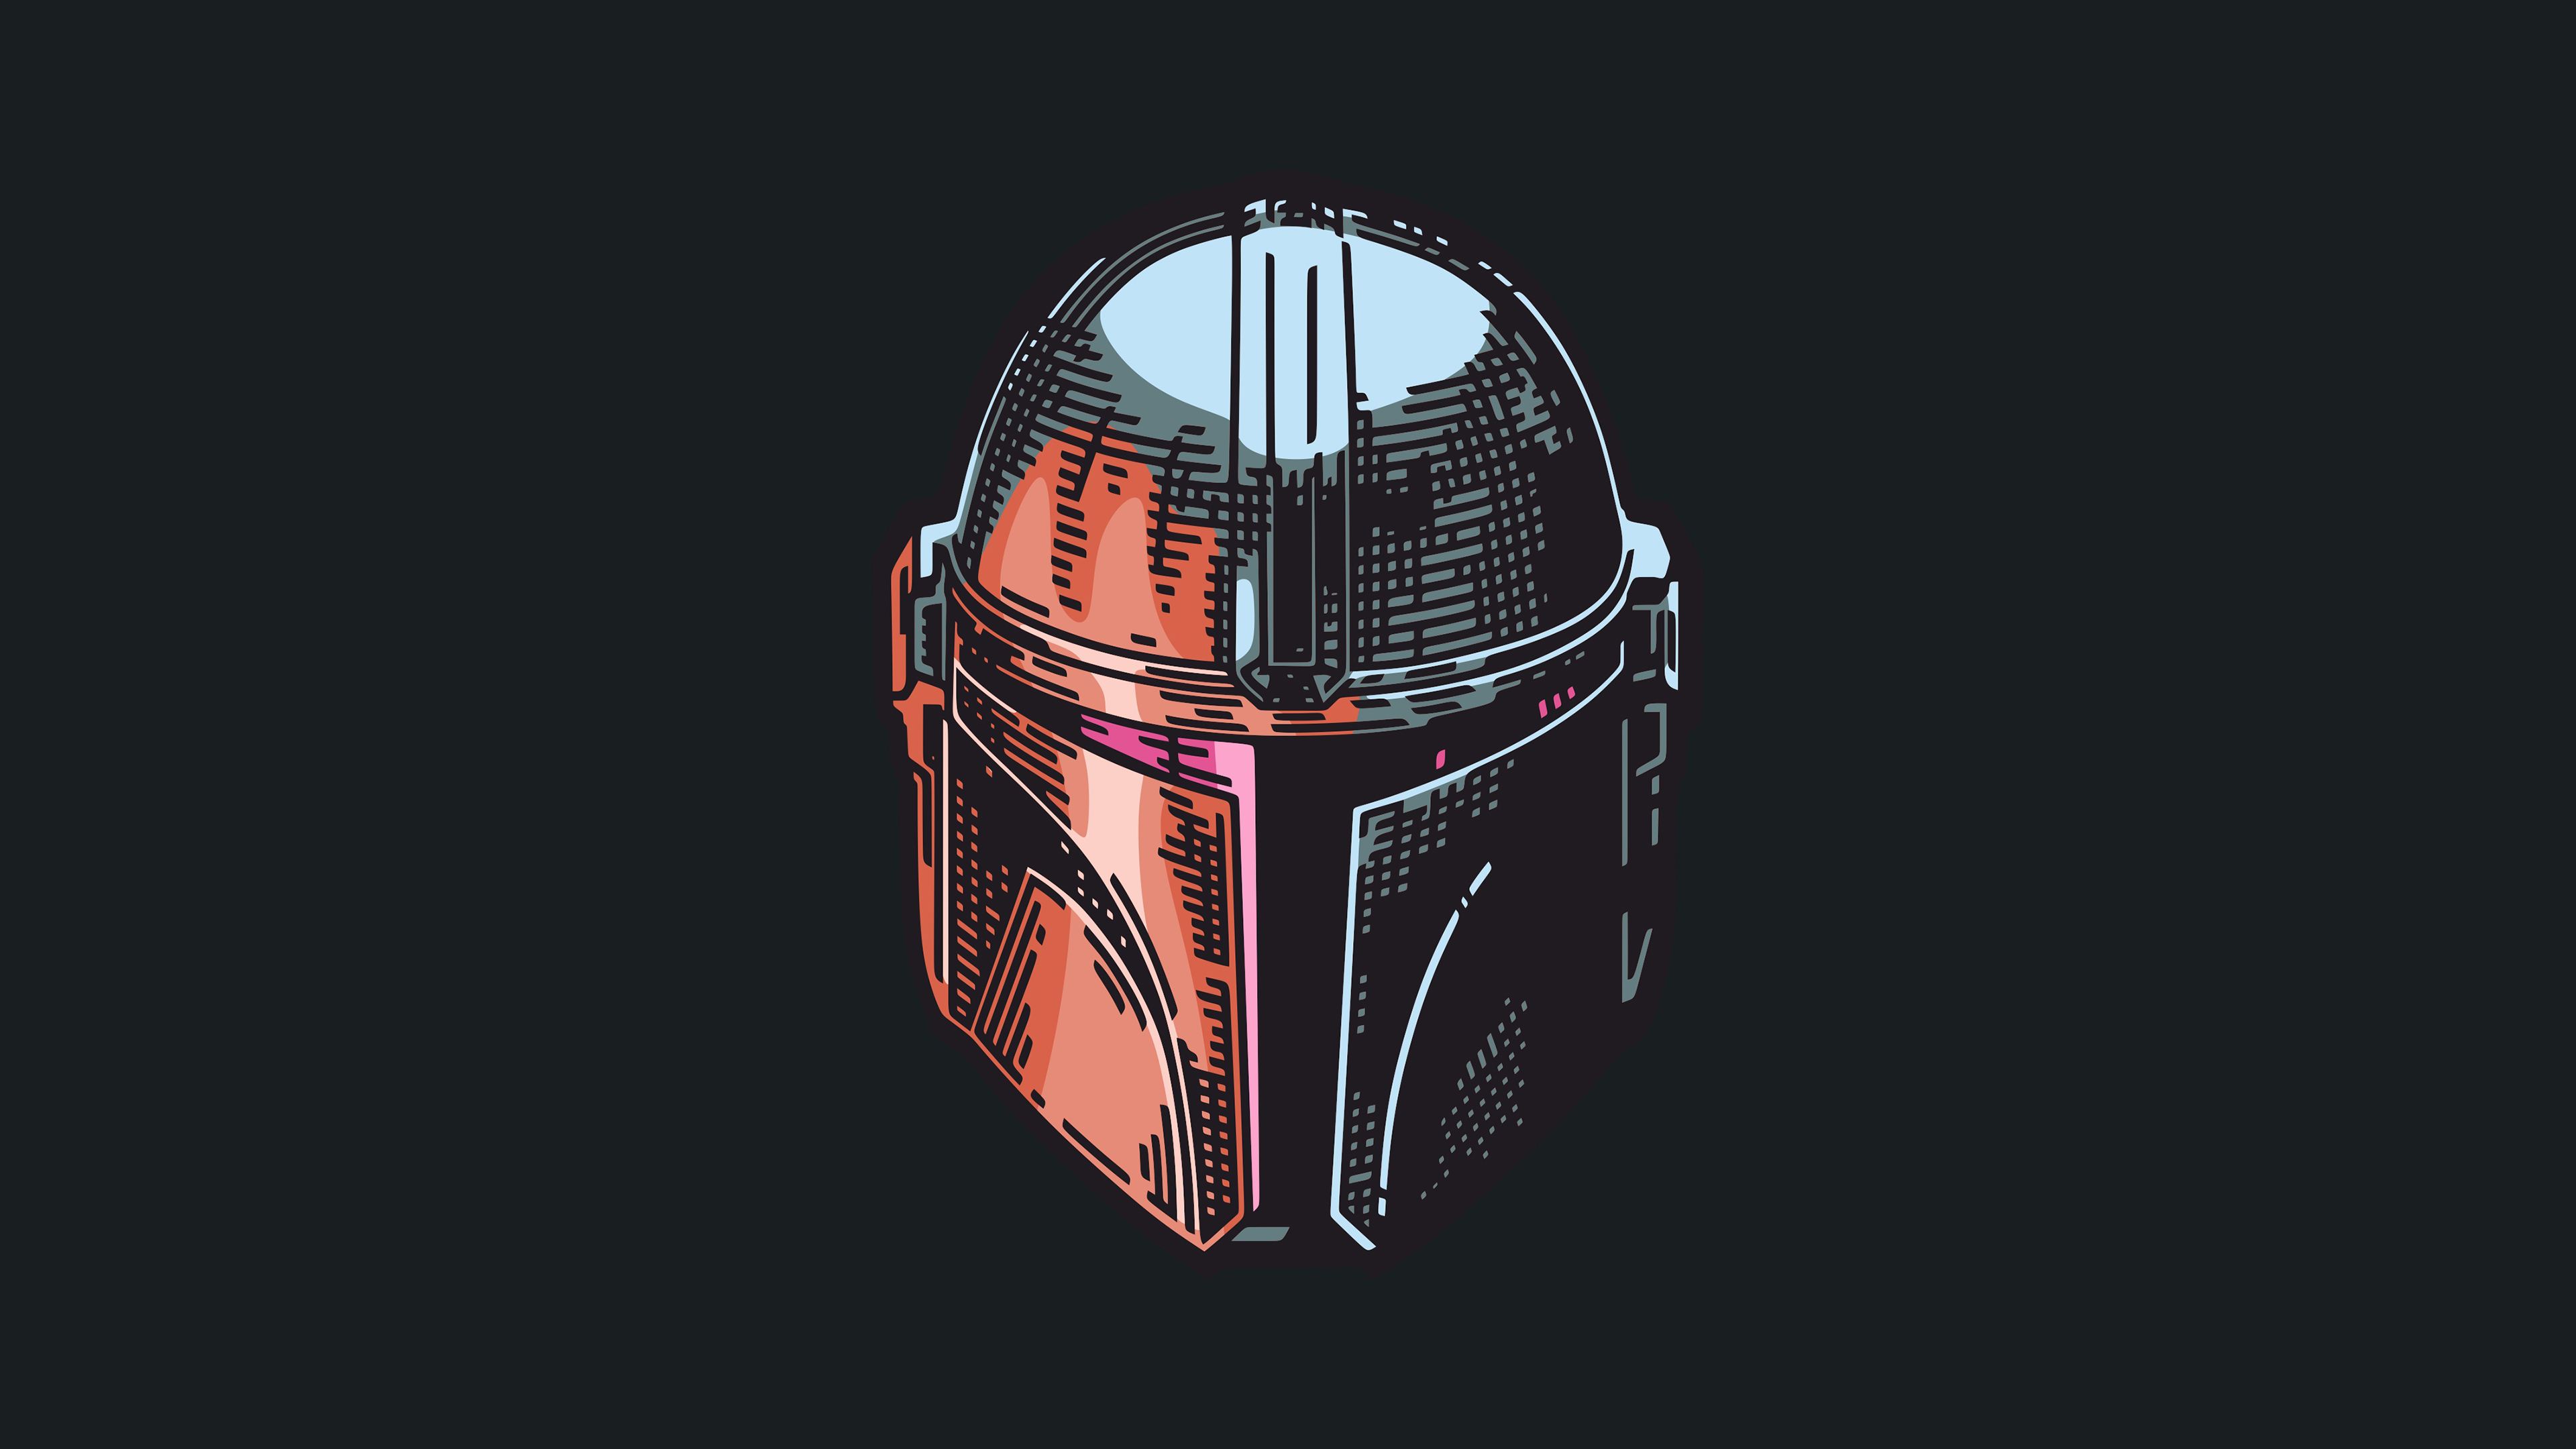 The Mandalorian Mask 4k Hd Tv Shows 4k Wallpapers Images Backgrounds Photos And Pictures